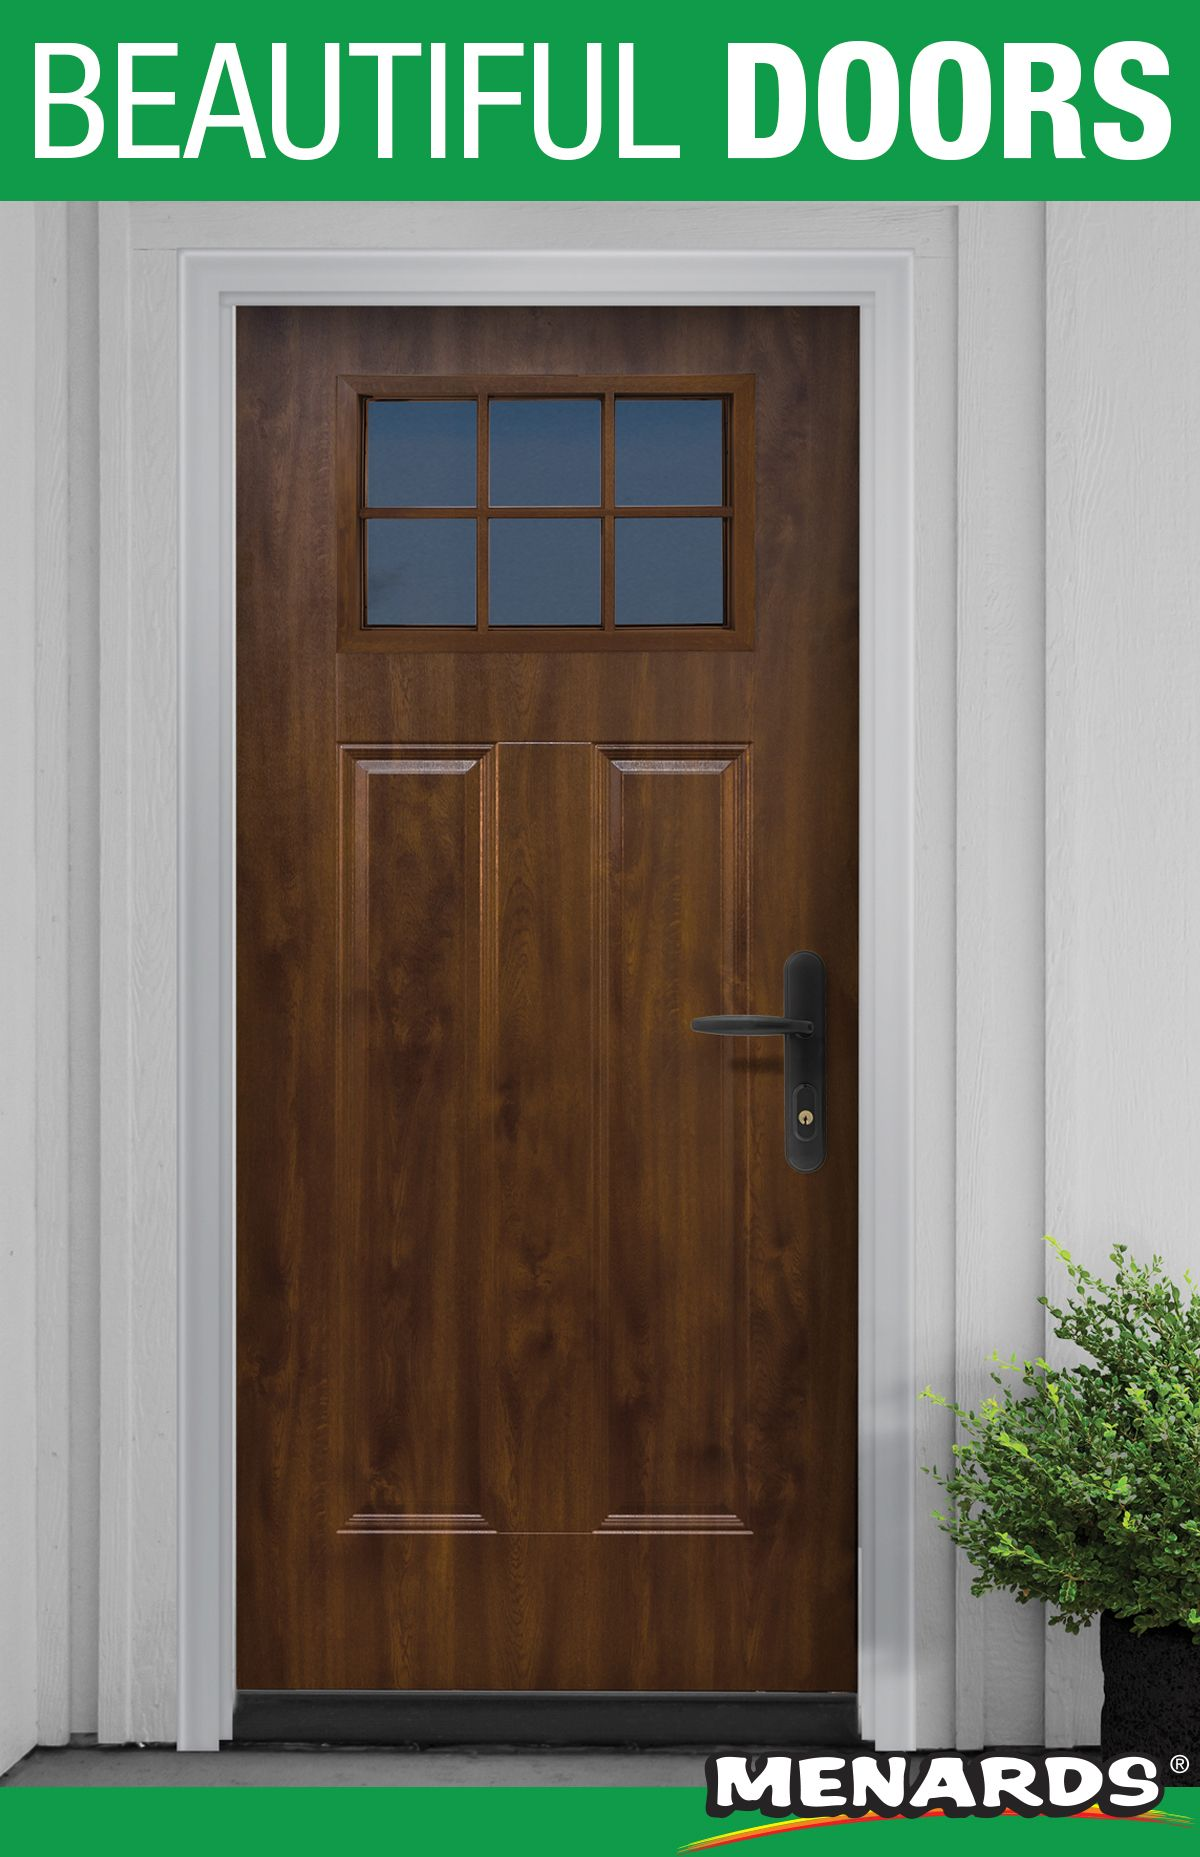 Add Beauty And Quality To Your Entryway With A Mastercraft Door